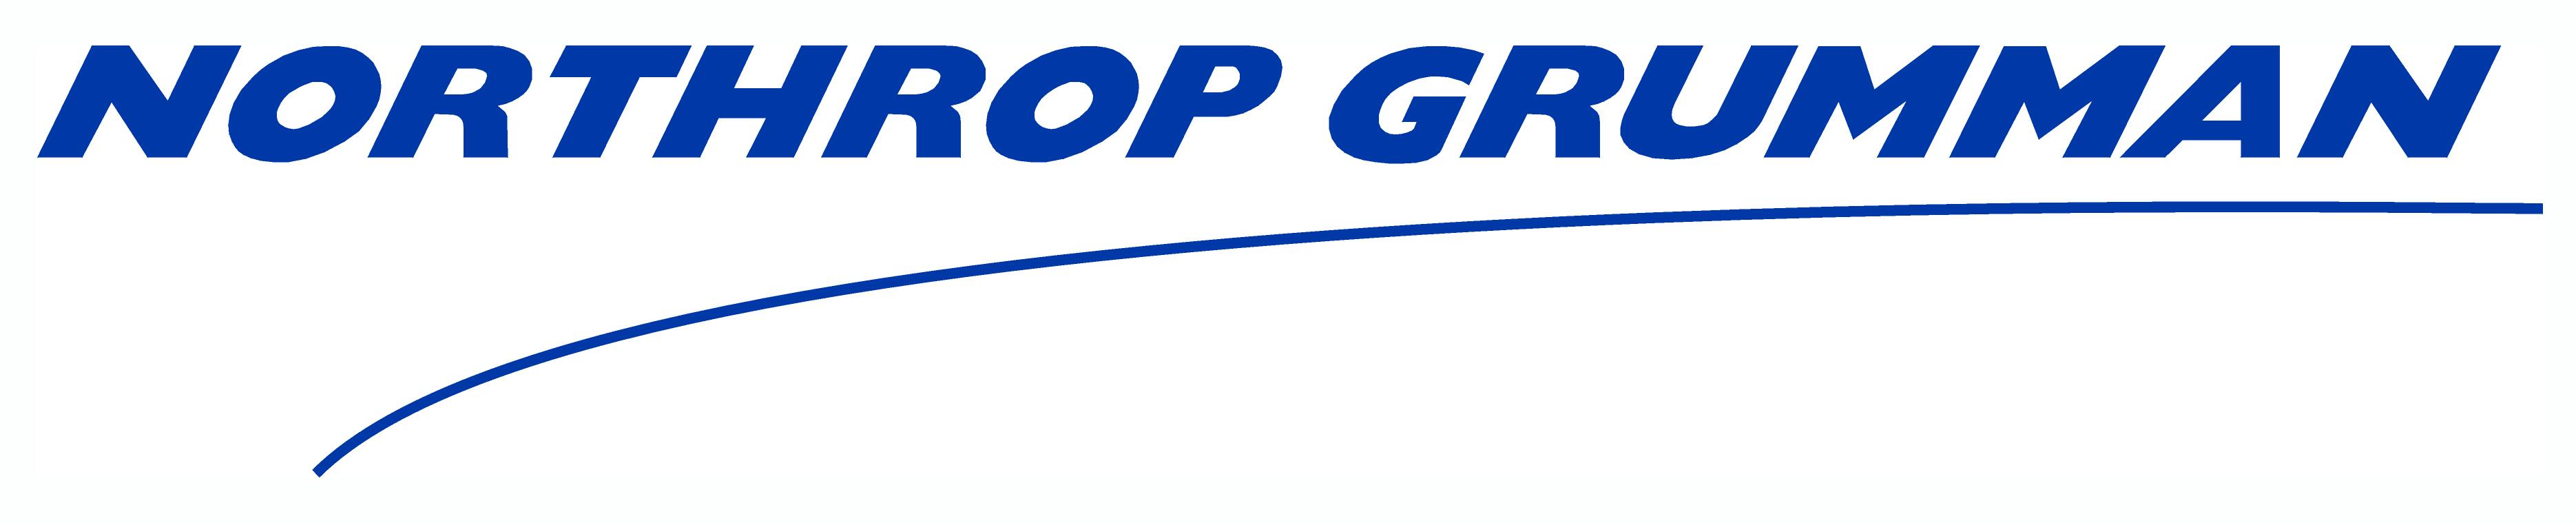 Pinnacle Client - Northrop Grumman